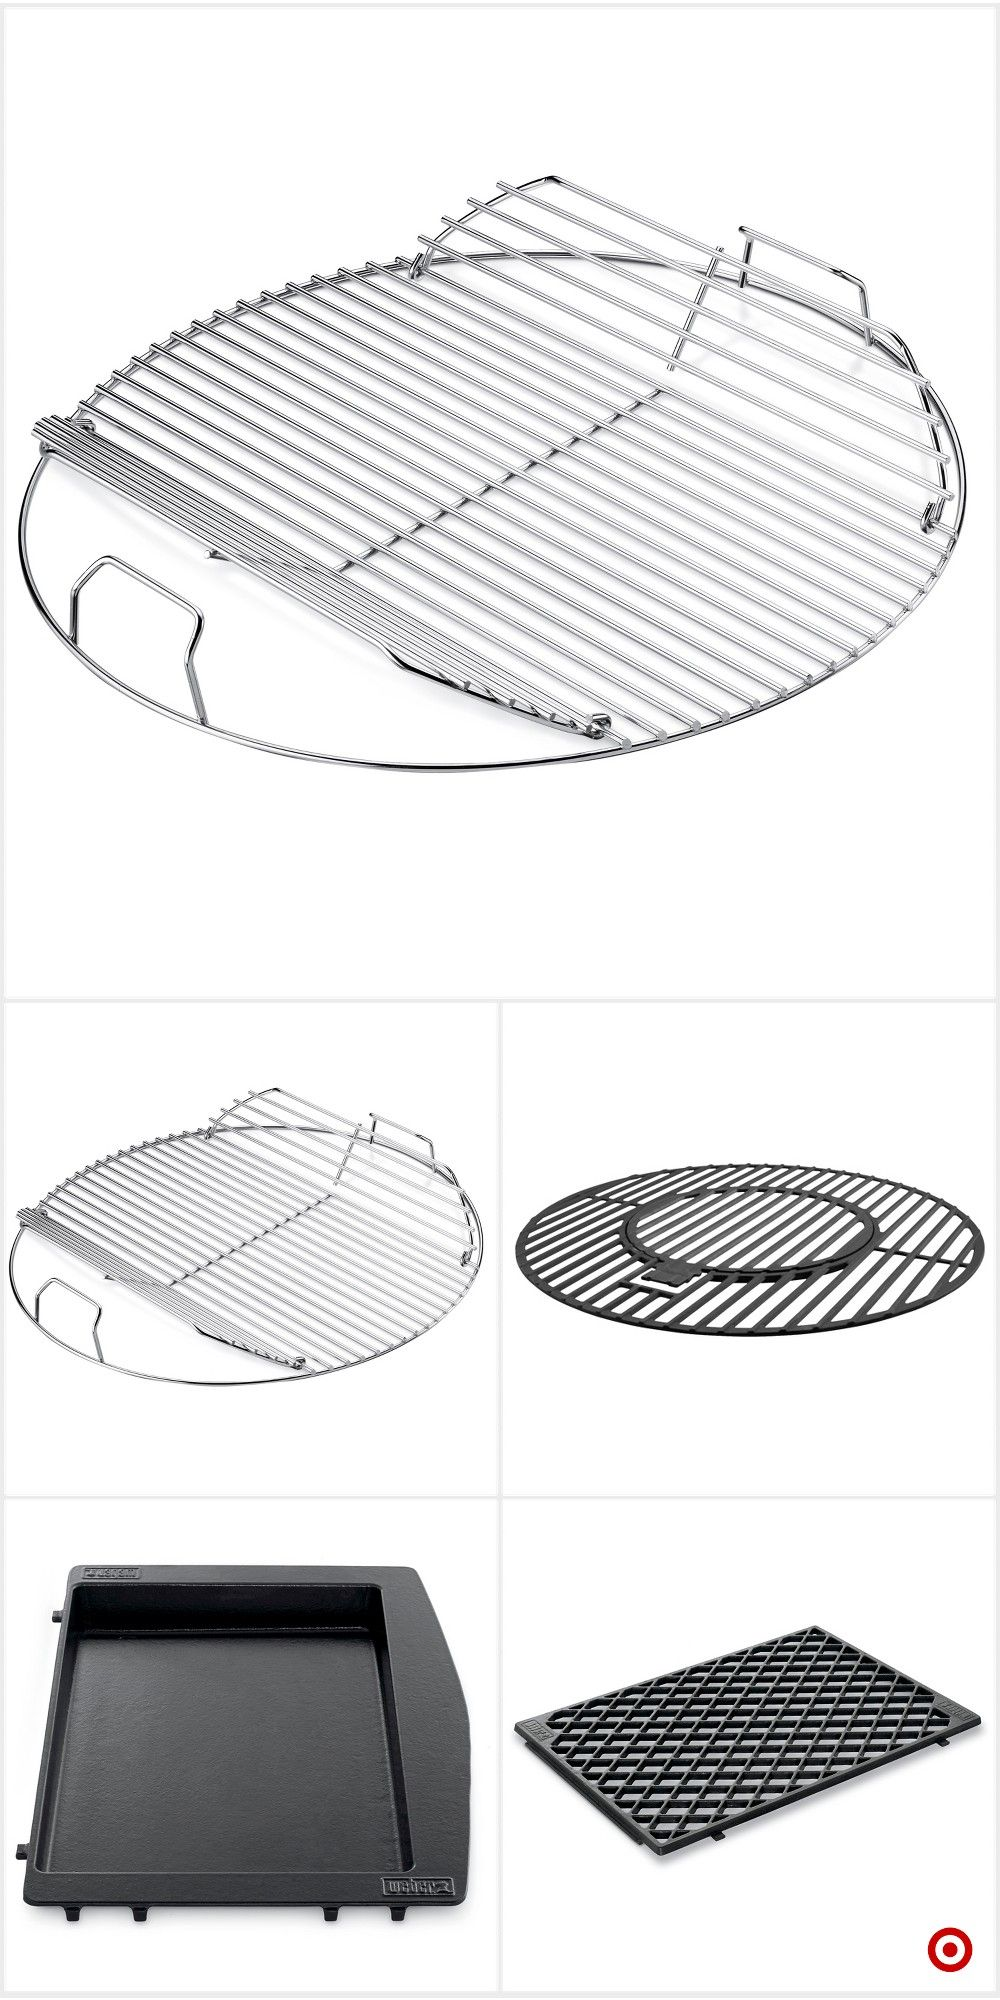 Luggage Rack Target Amusing Shop Target For Grill Grate You Will Love At Great Low Pricesfree Design Ideas